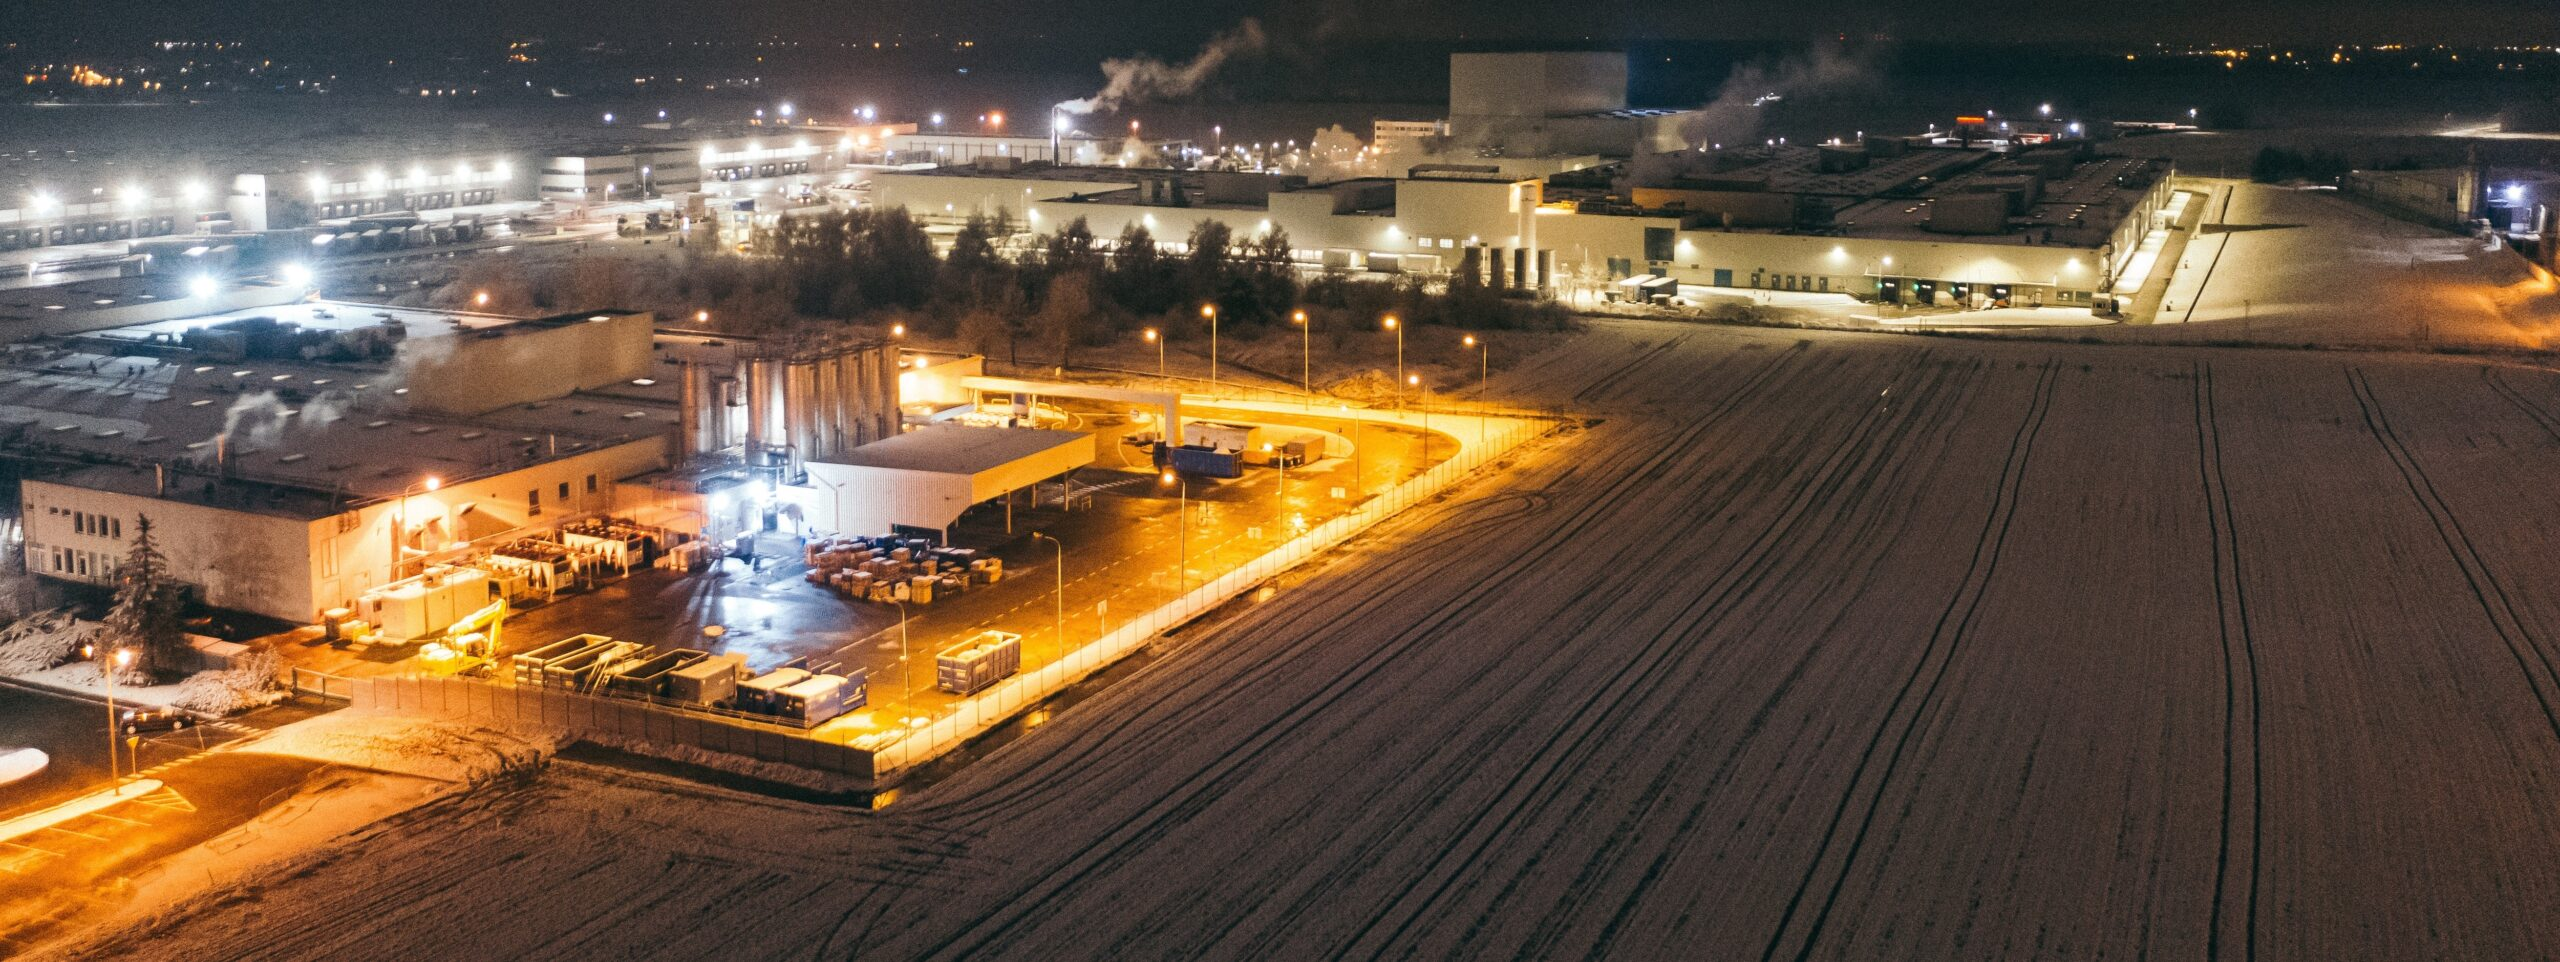 Logistics site free of ice at night during winter